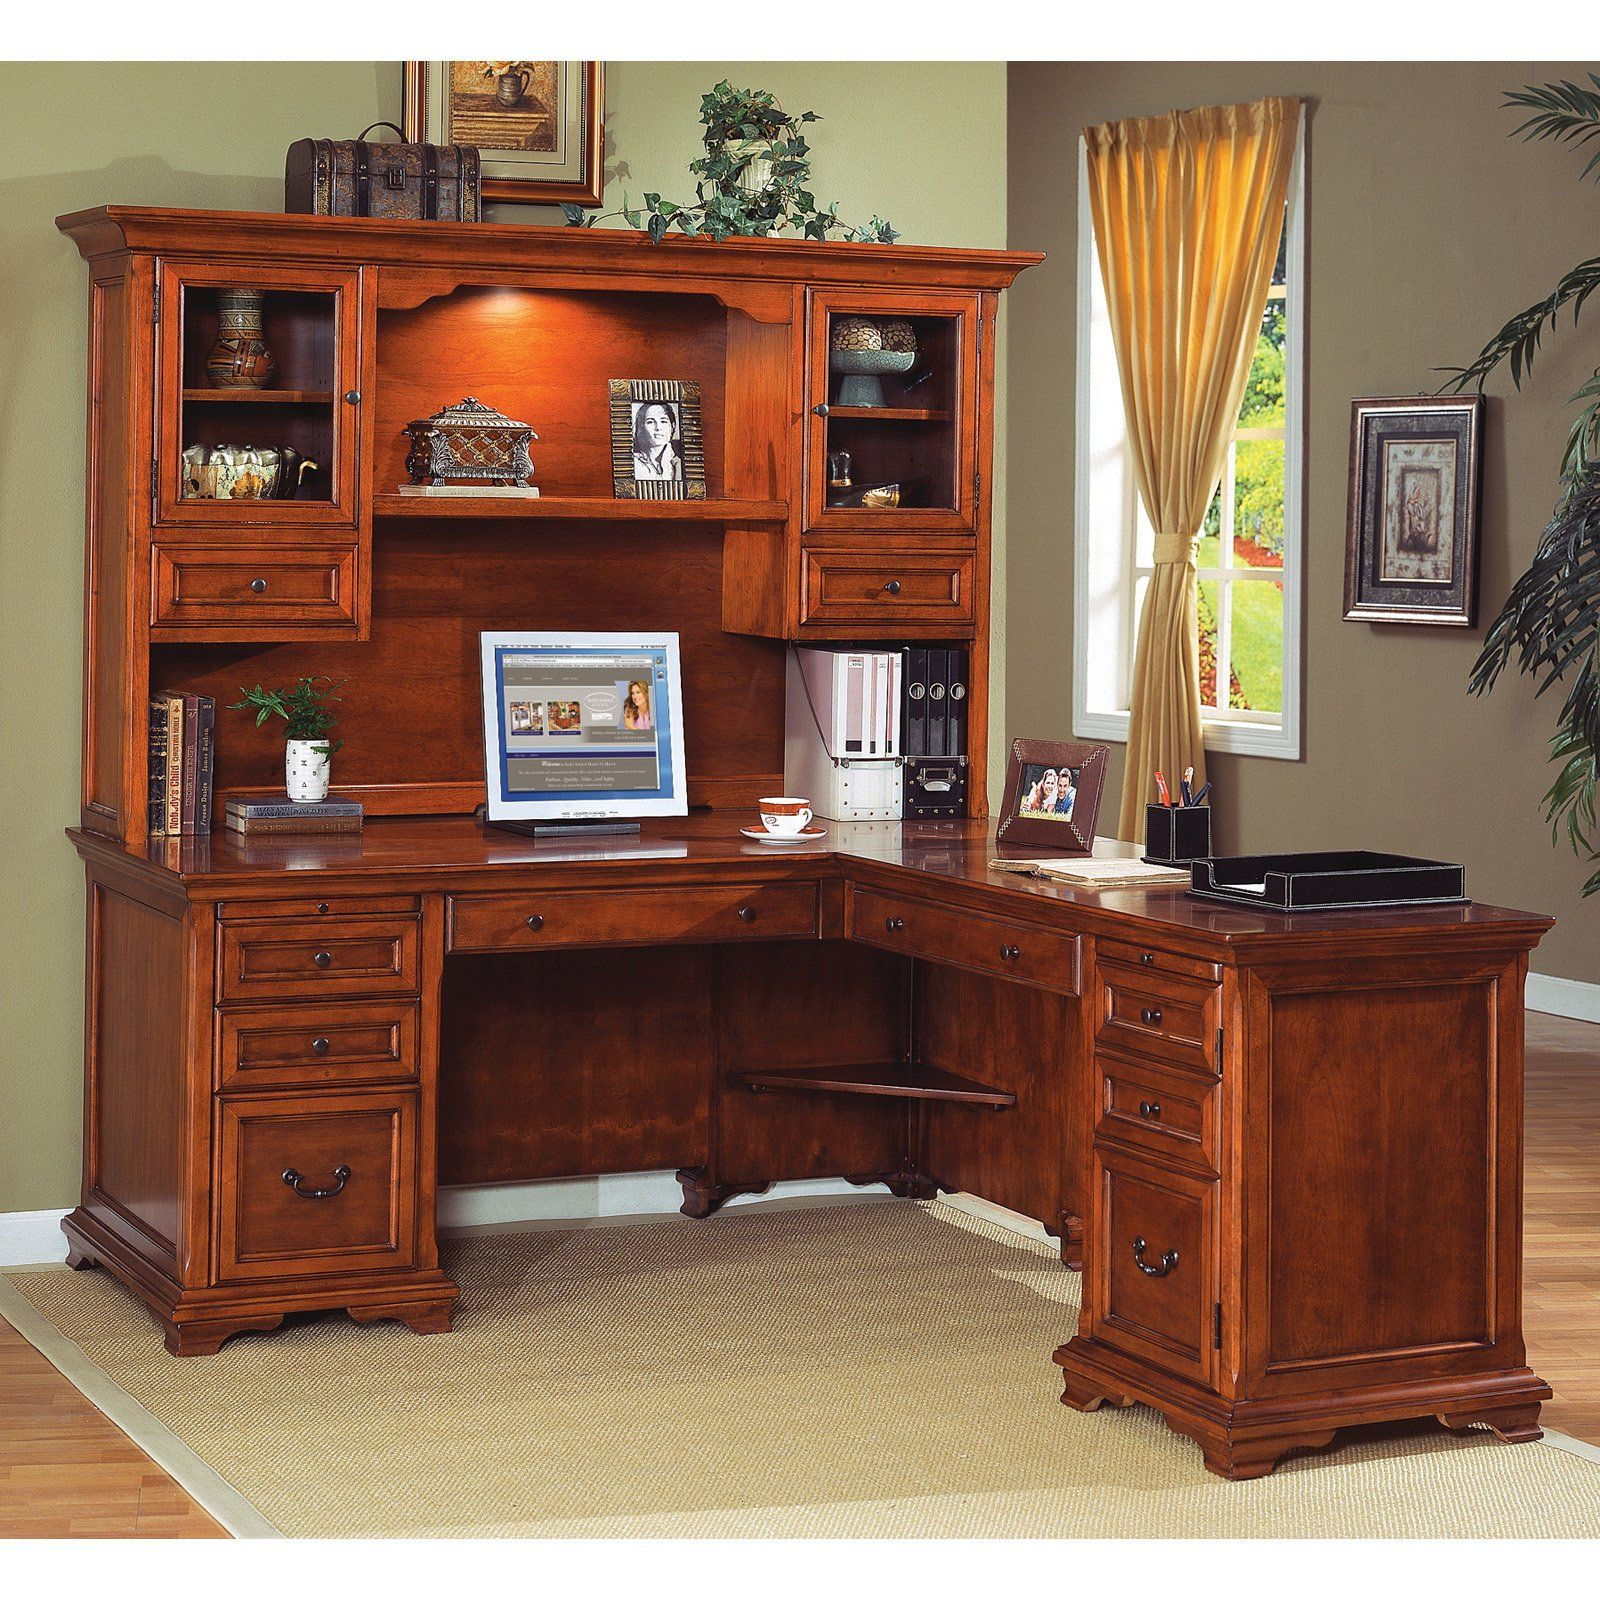 99 home office l shaped desk with hutch expensive home office furniture check more